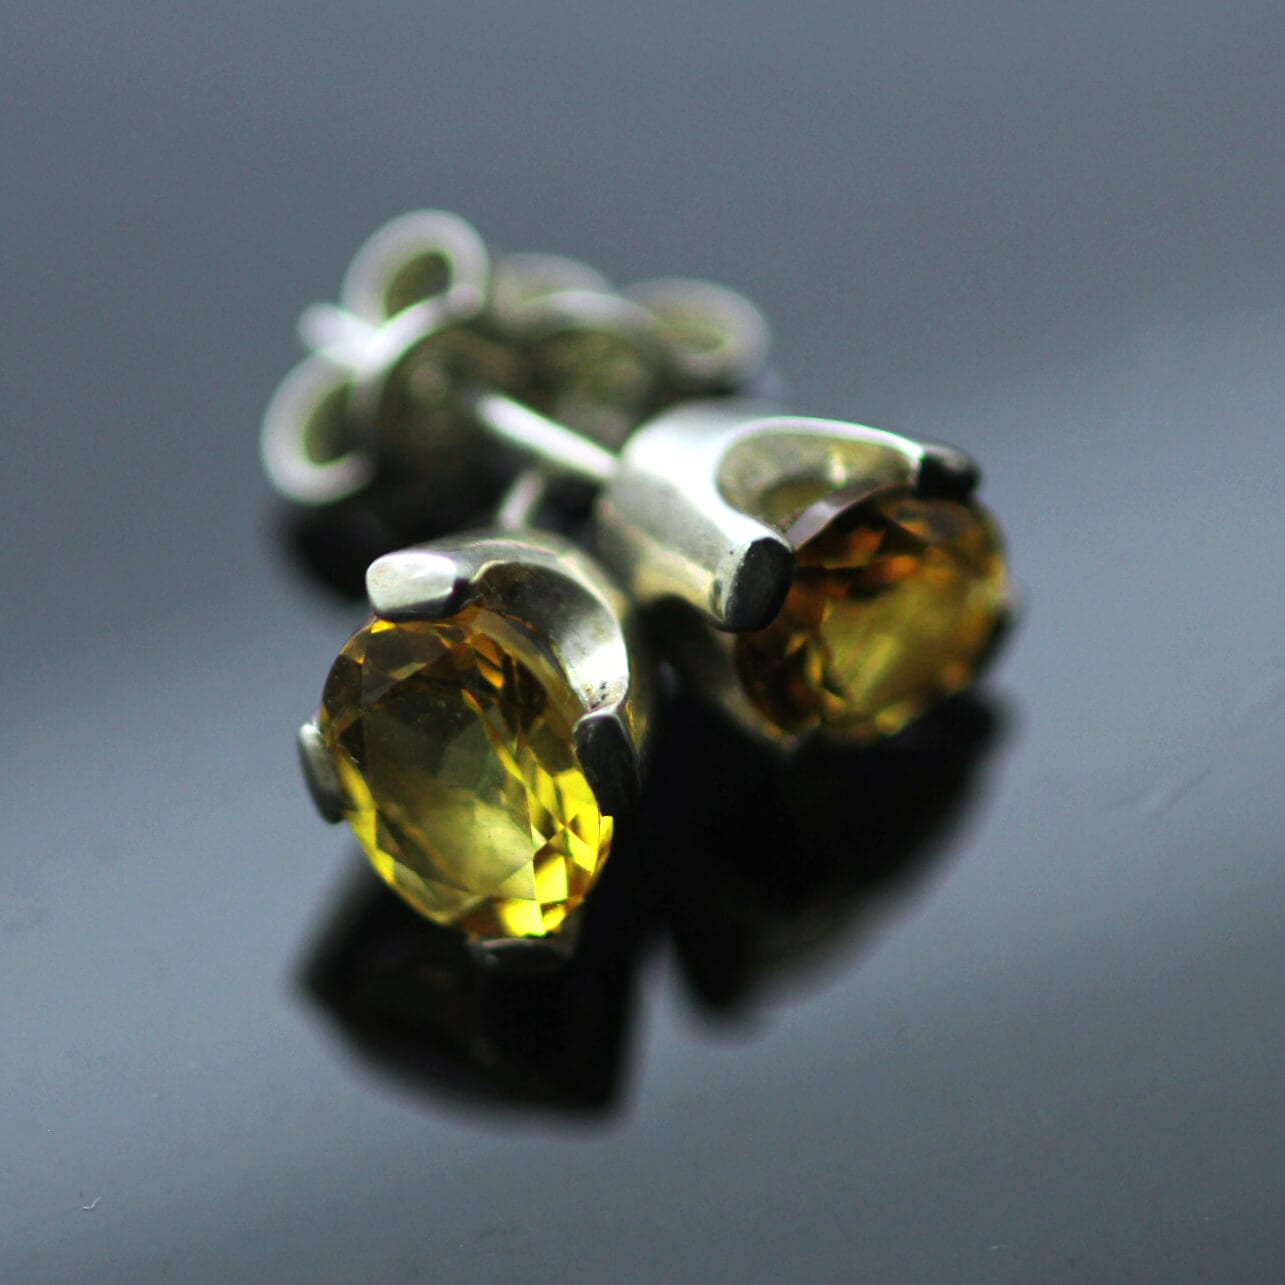 Oval cut Citrine gemstones set in modern Silver stud earrings